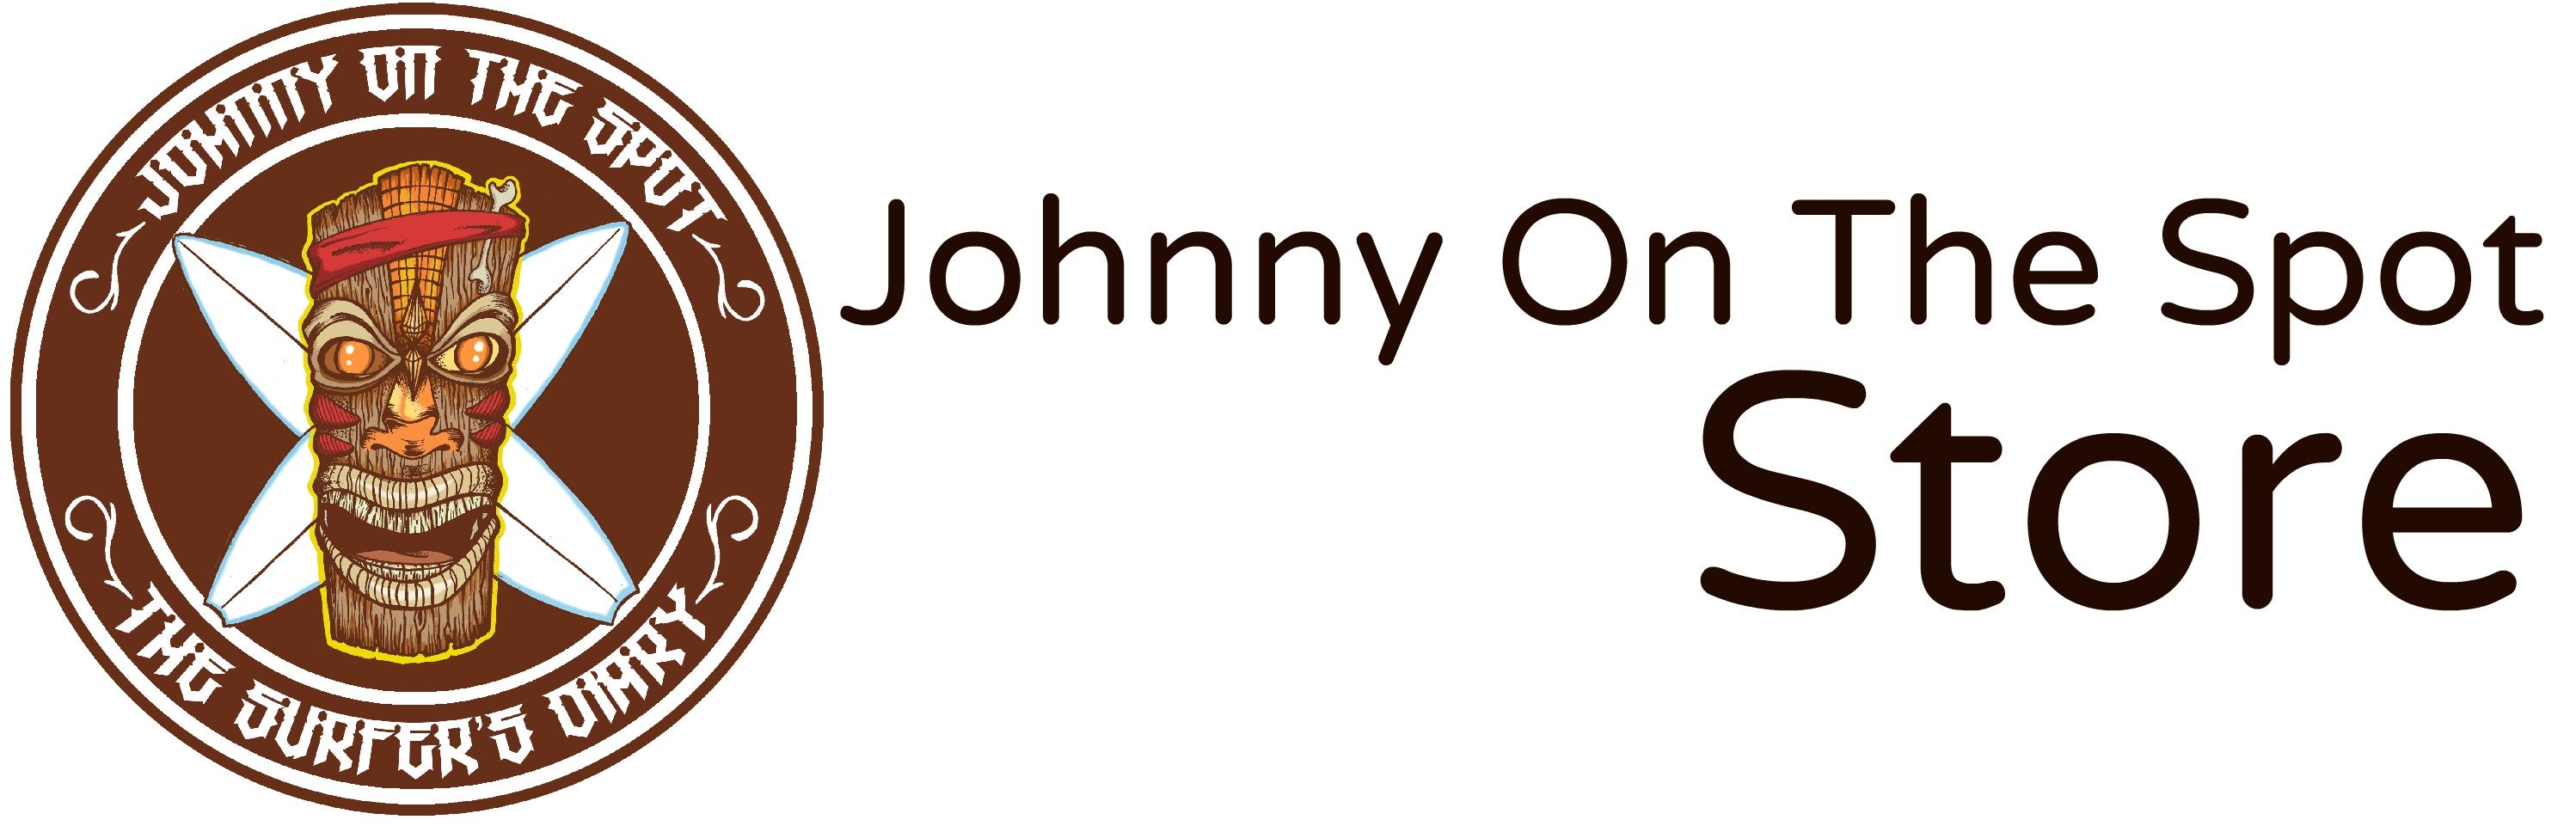 Johnny On The Spot Store